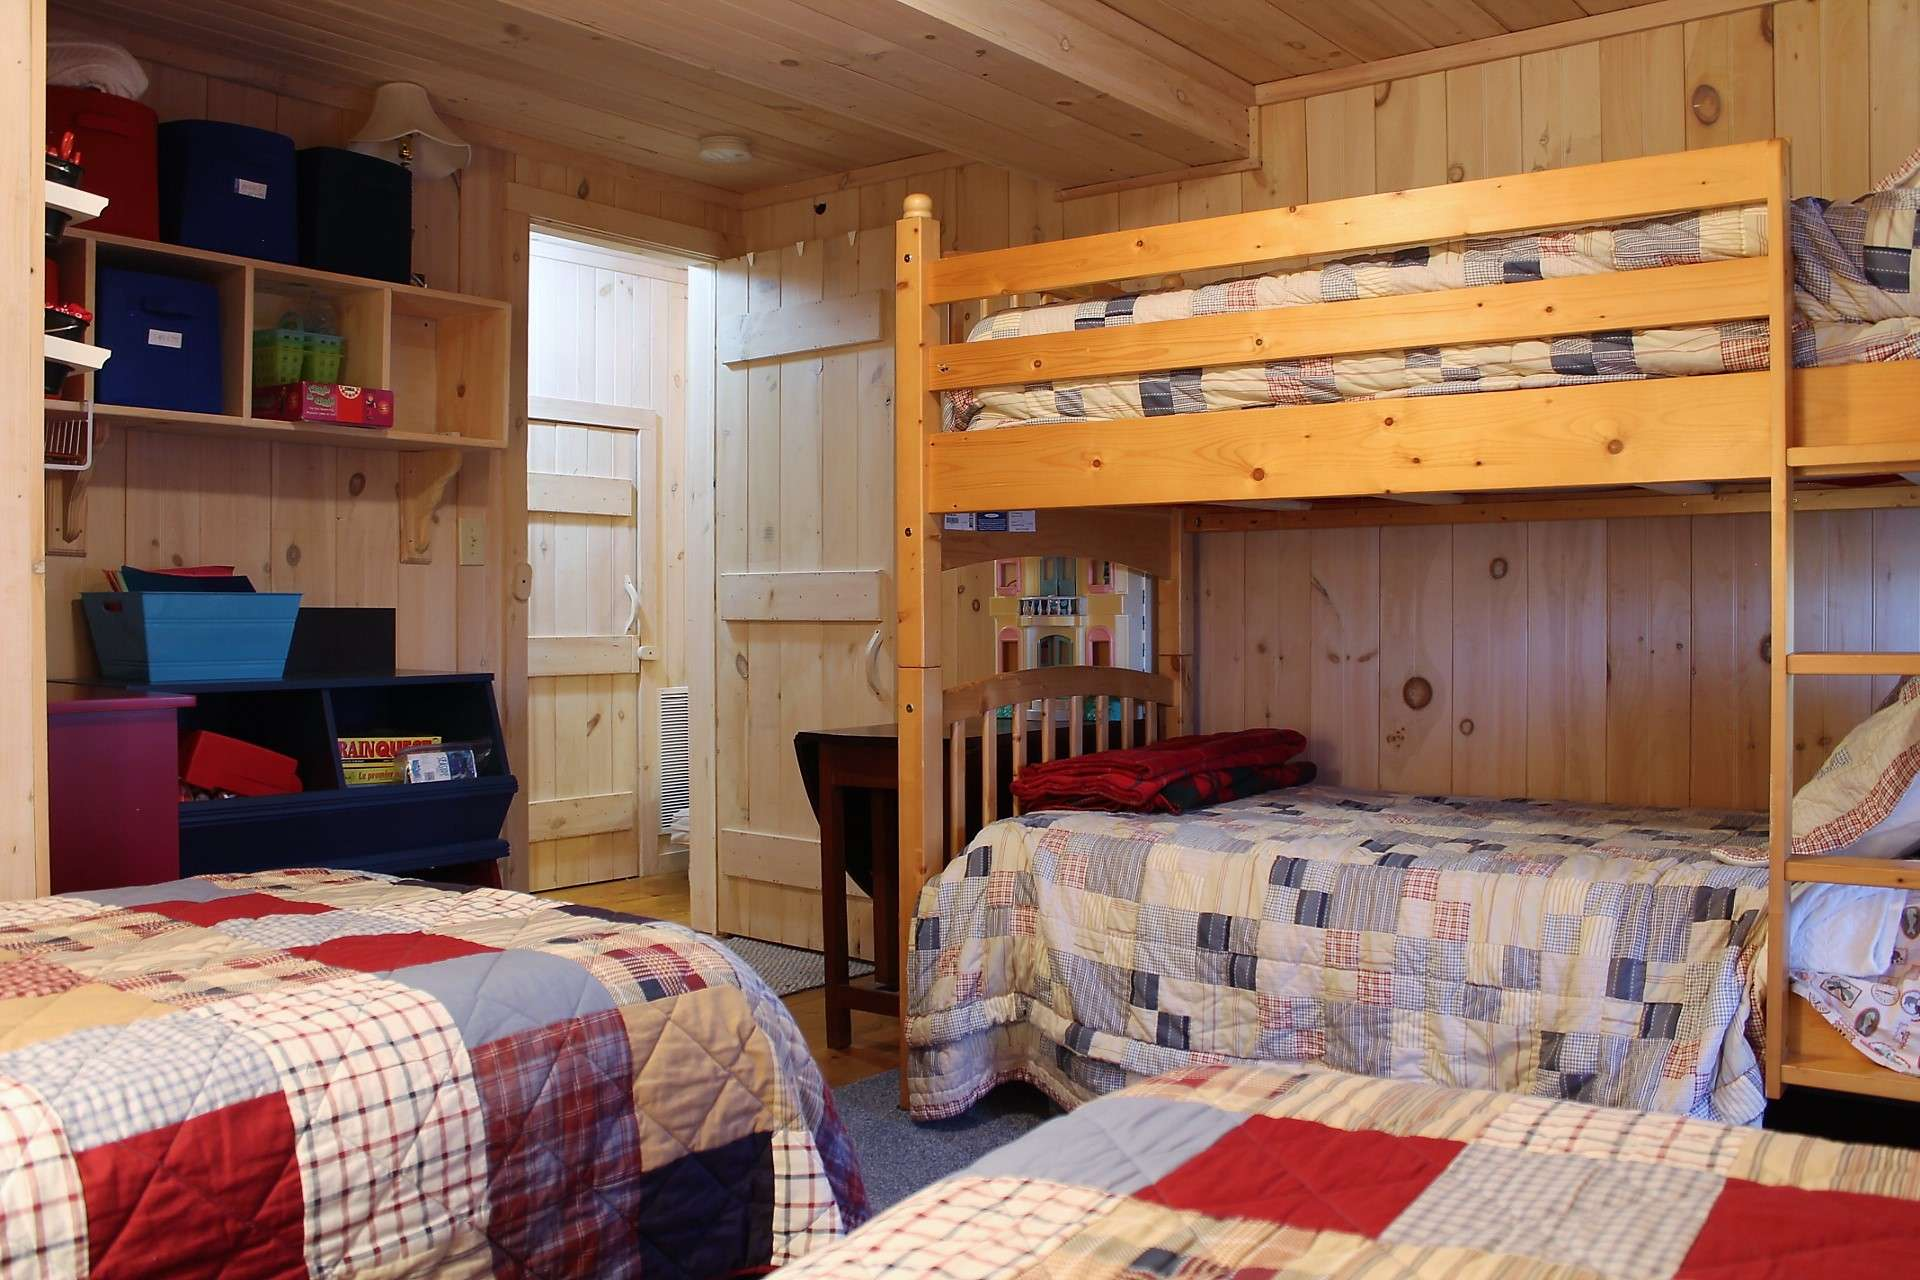 Grandkids will love this adorable bunkroom!!